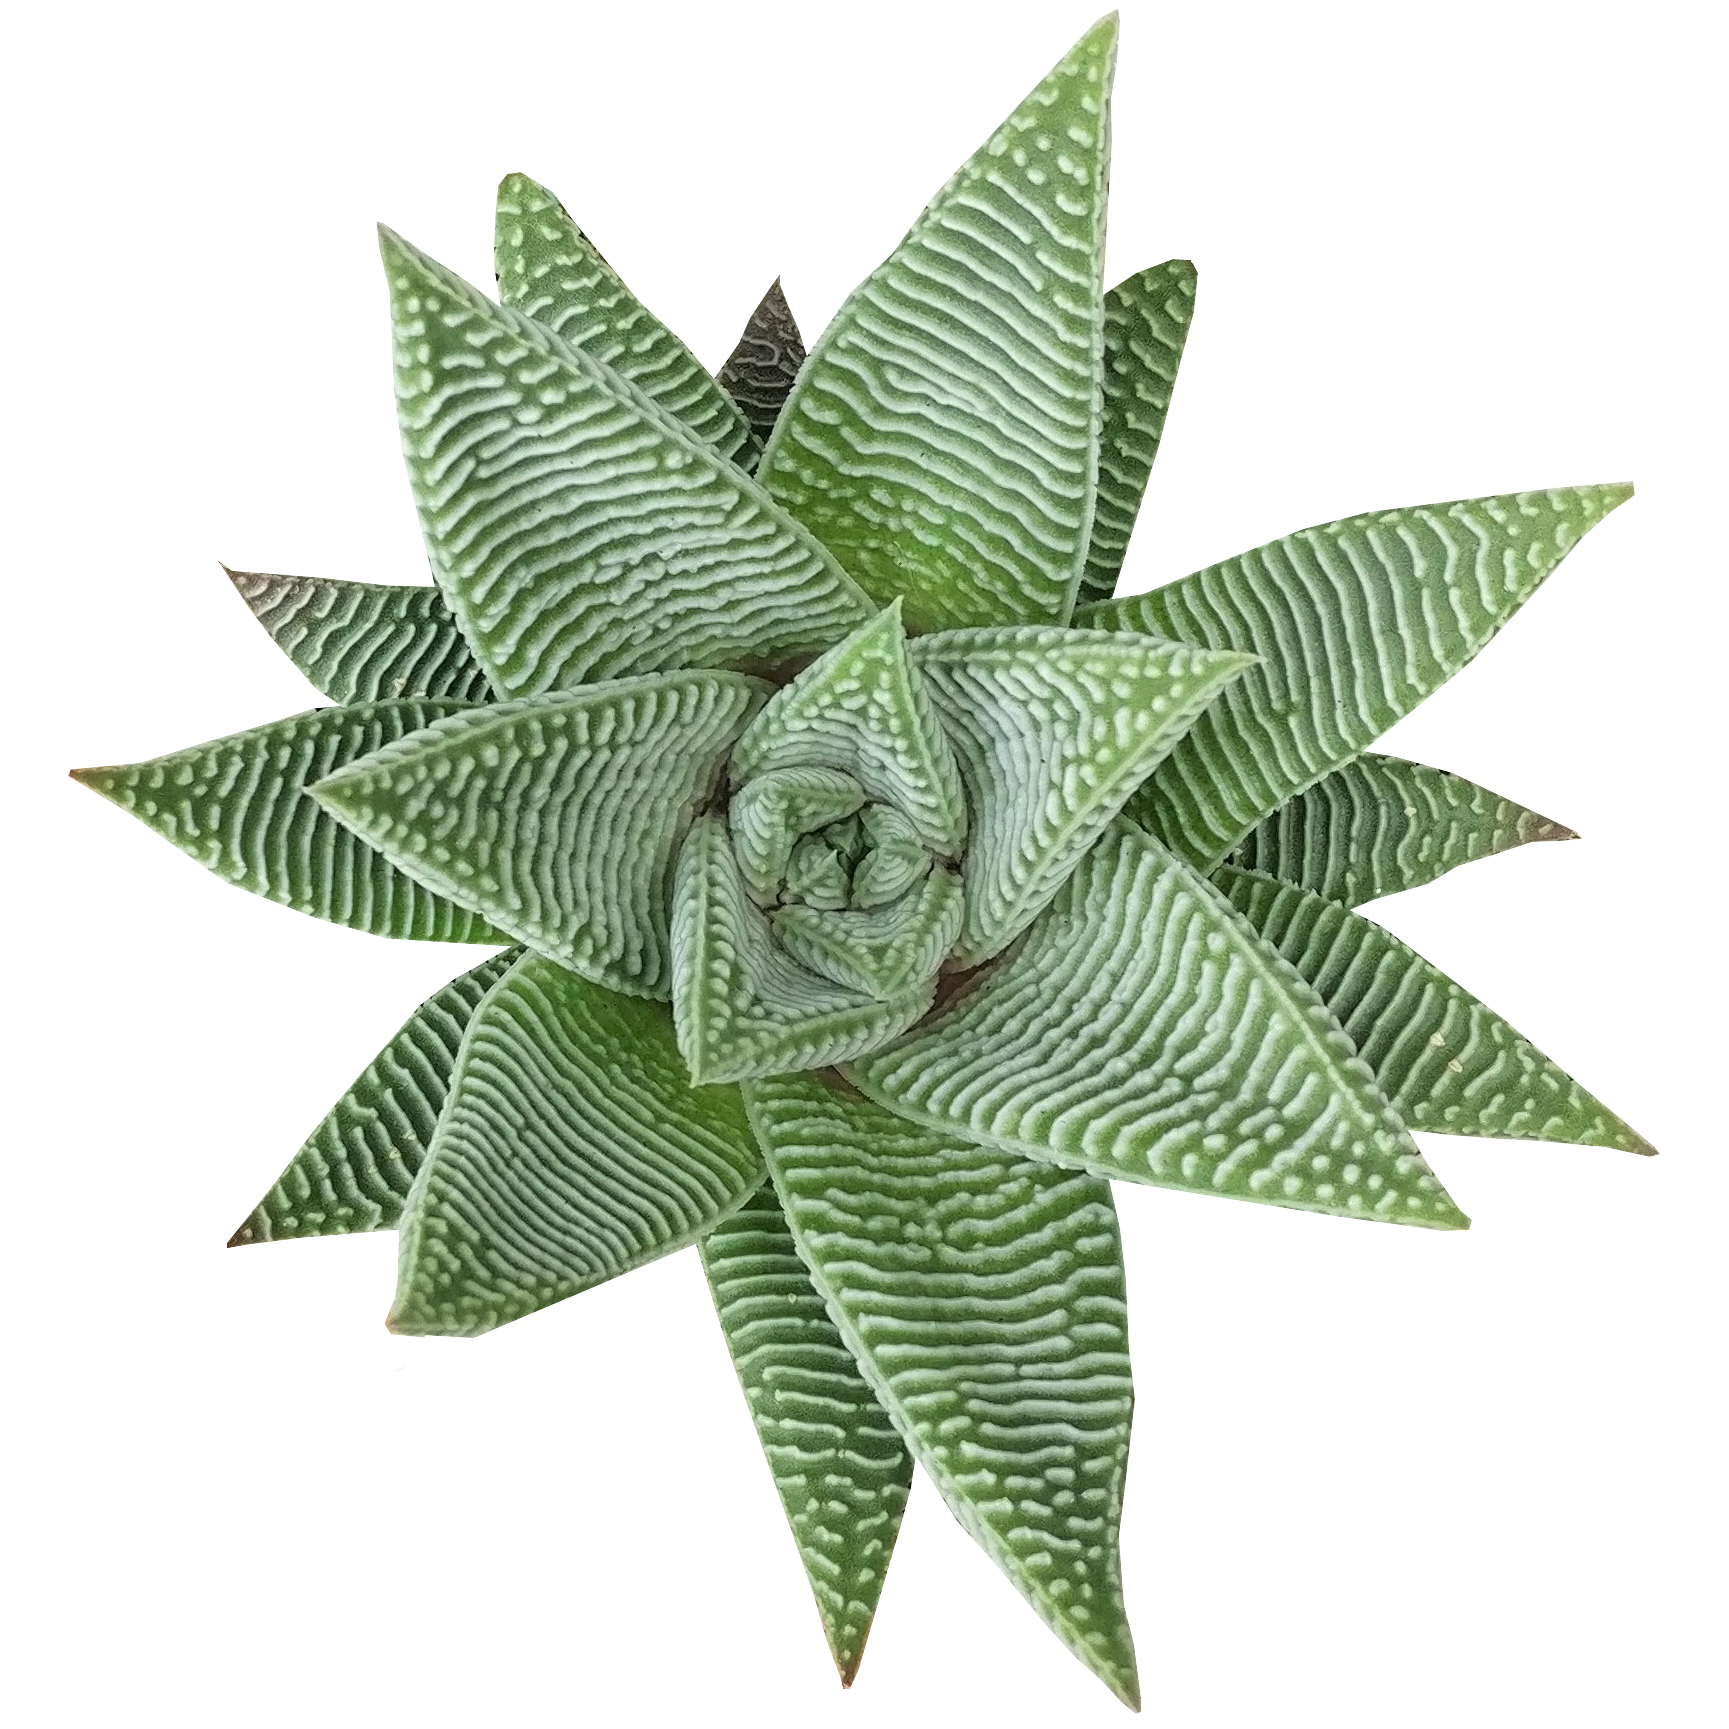 Haworthia Limifolia for sale, Rare succulents, succulents shop in California, Succulents, succulent care guide, Succulents shop near me, cactus, succulents garden, succulents store in CA, Haworthia Limifolia in California, How to grow Haworthia Limifolia